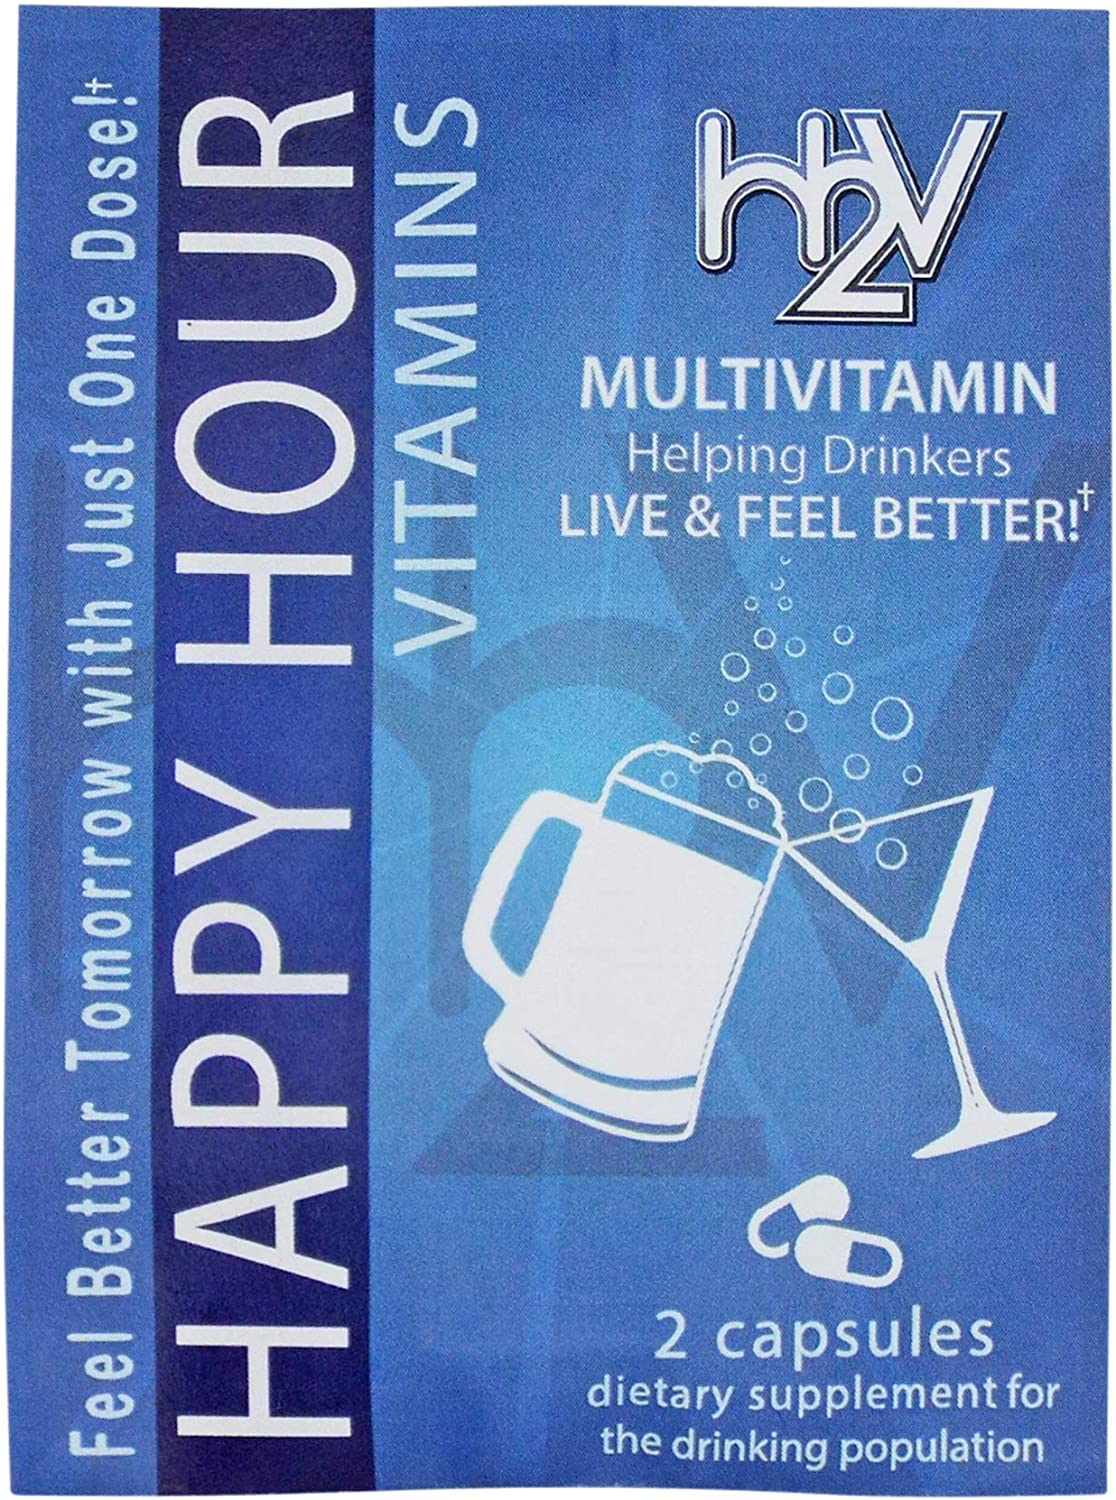 Happy Hour Vitamins- 24 Packs - Multivitamin Formulated for Better Mornings – Live & Feel Better with Milk Thistle, Prickly Pear Cactus, B & C Vitamins, & More